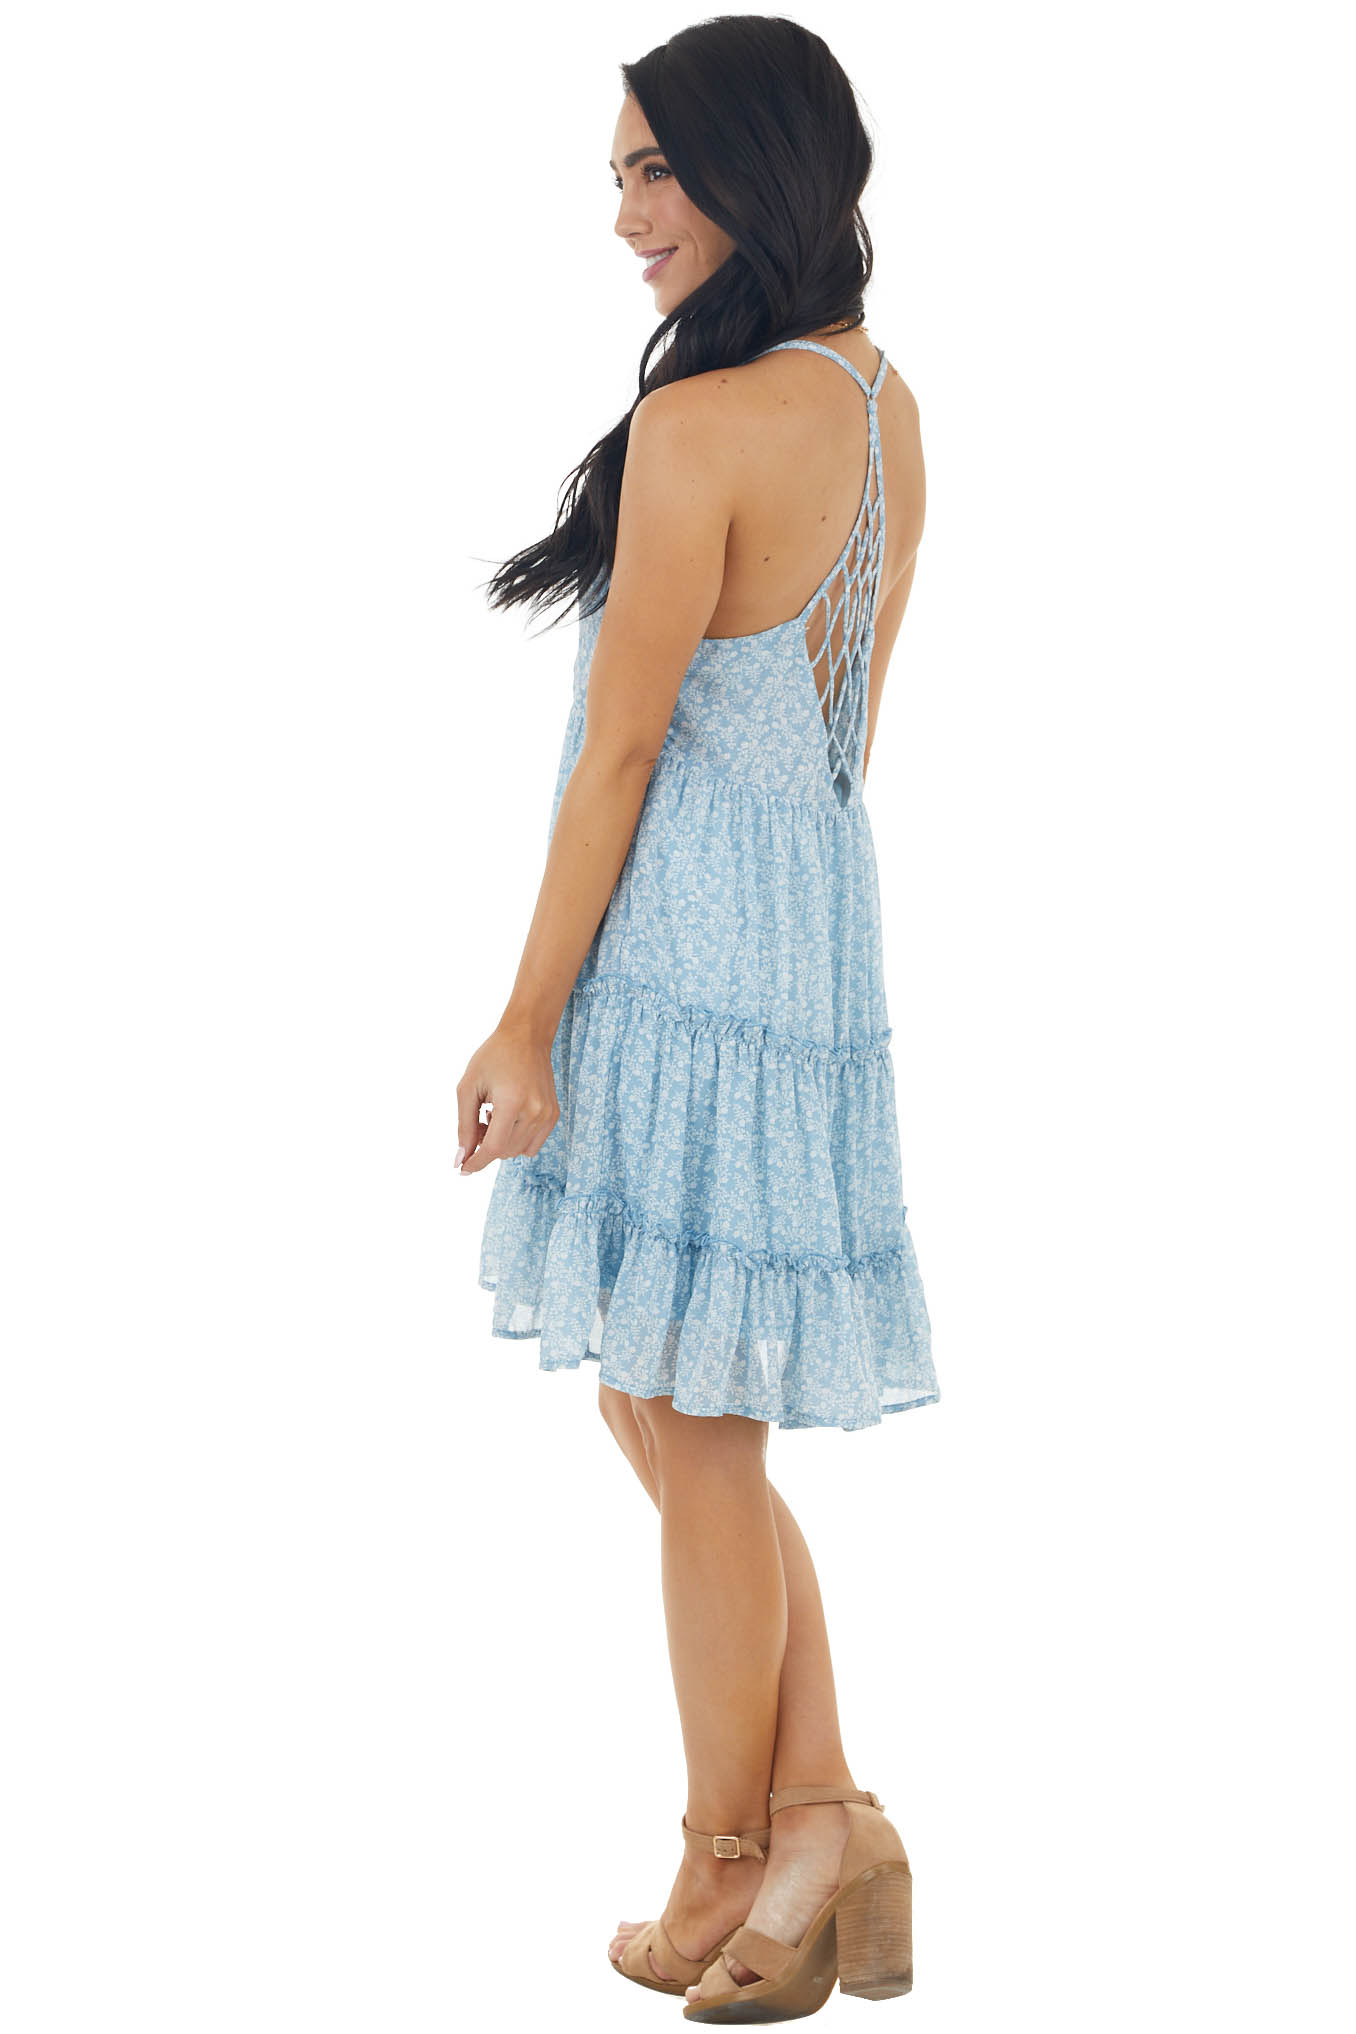 Sky Ditsy Floral Sleeveless Tiered Dress with Caged Back